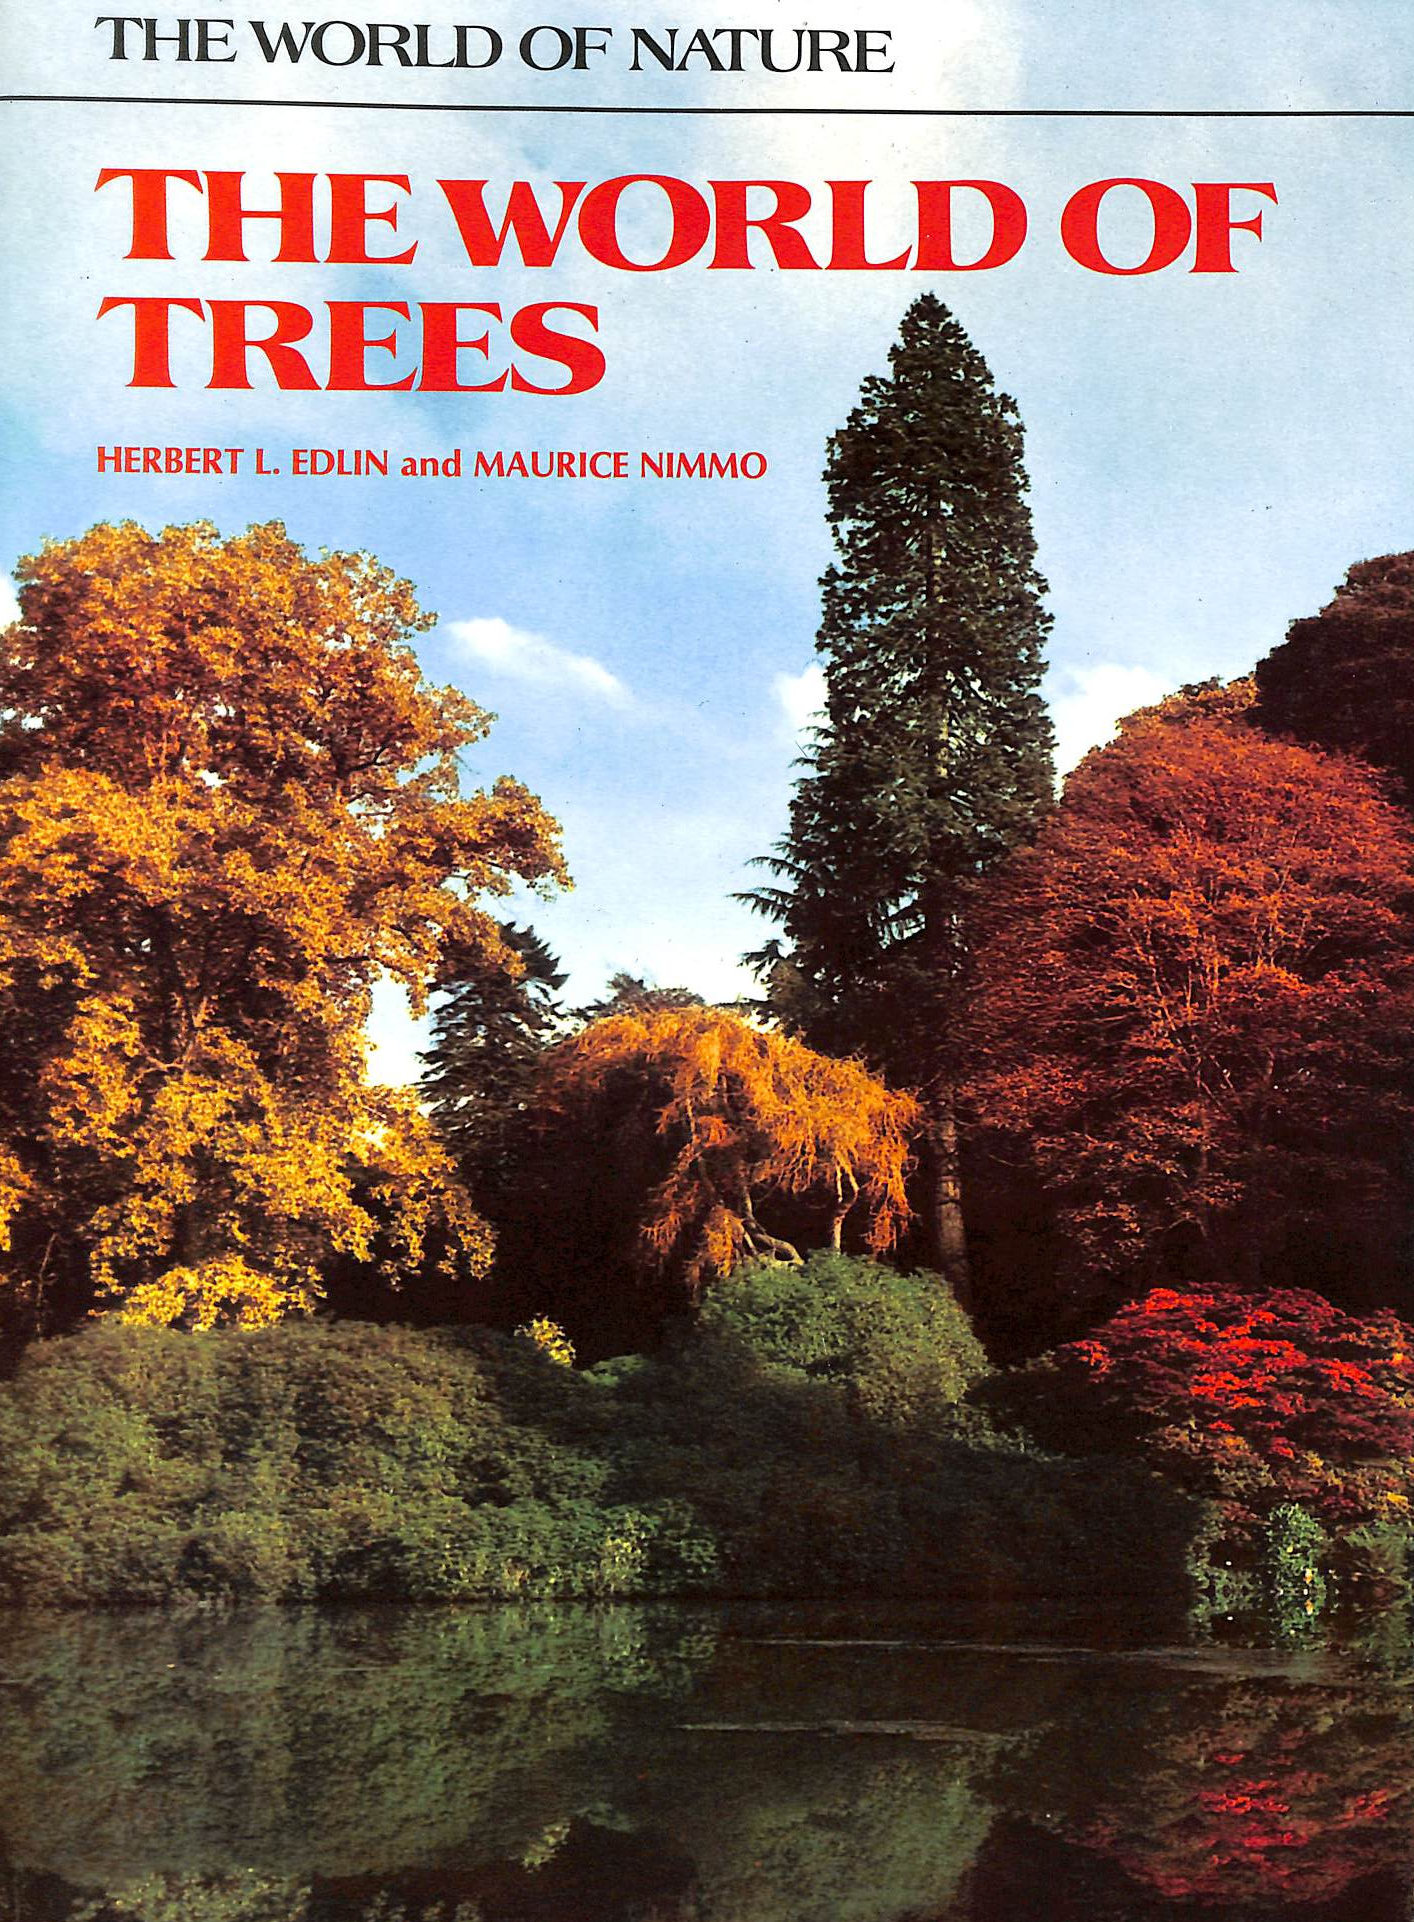 Image for World of Trees (The world of nature)